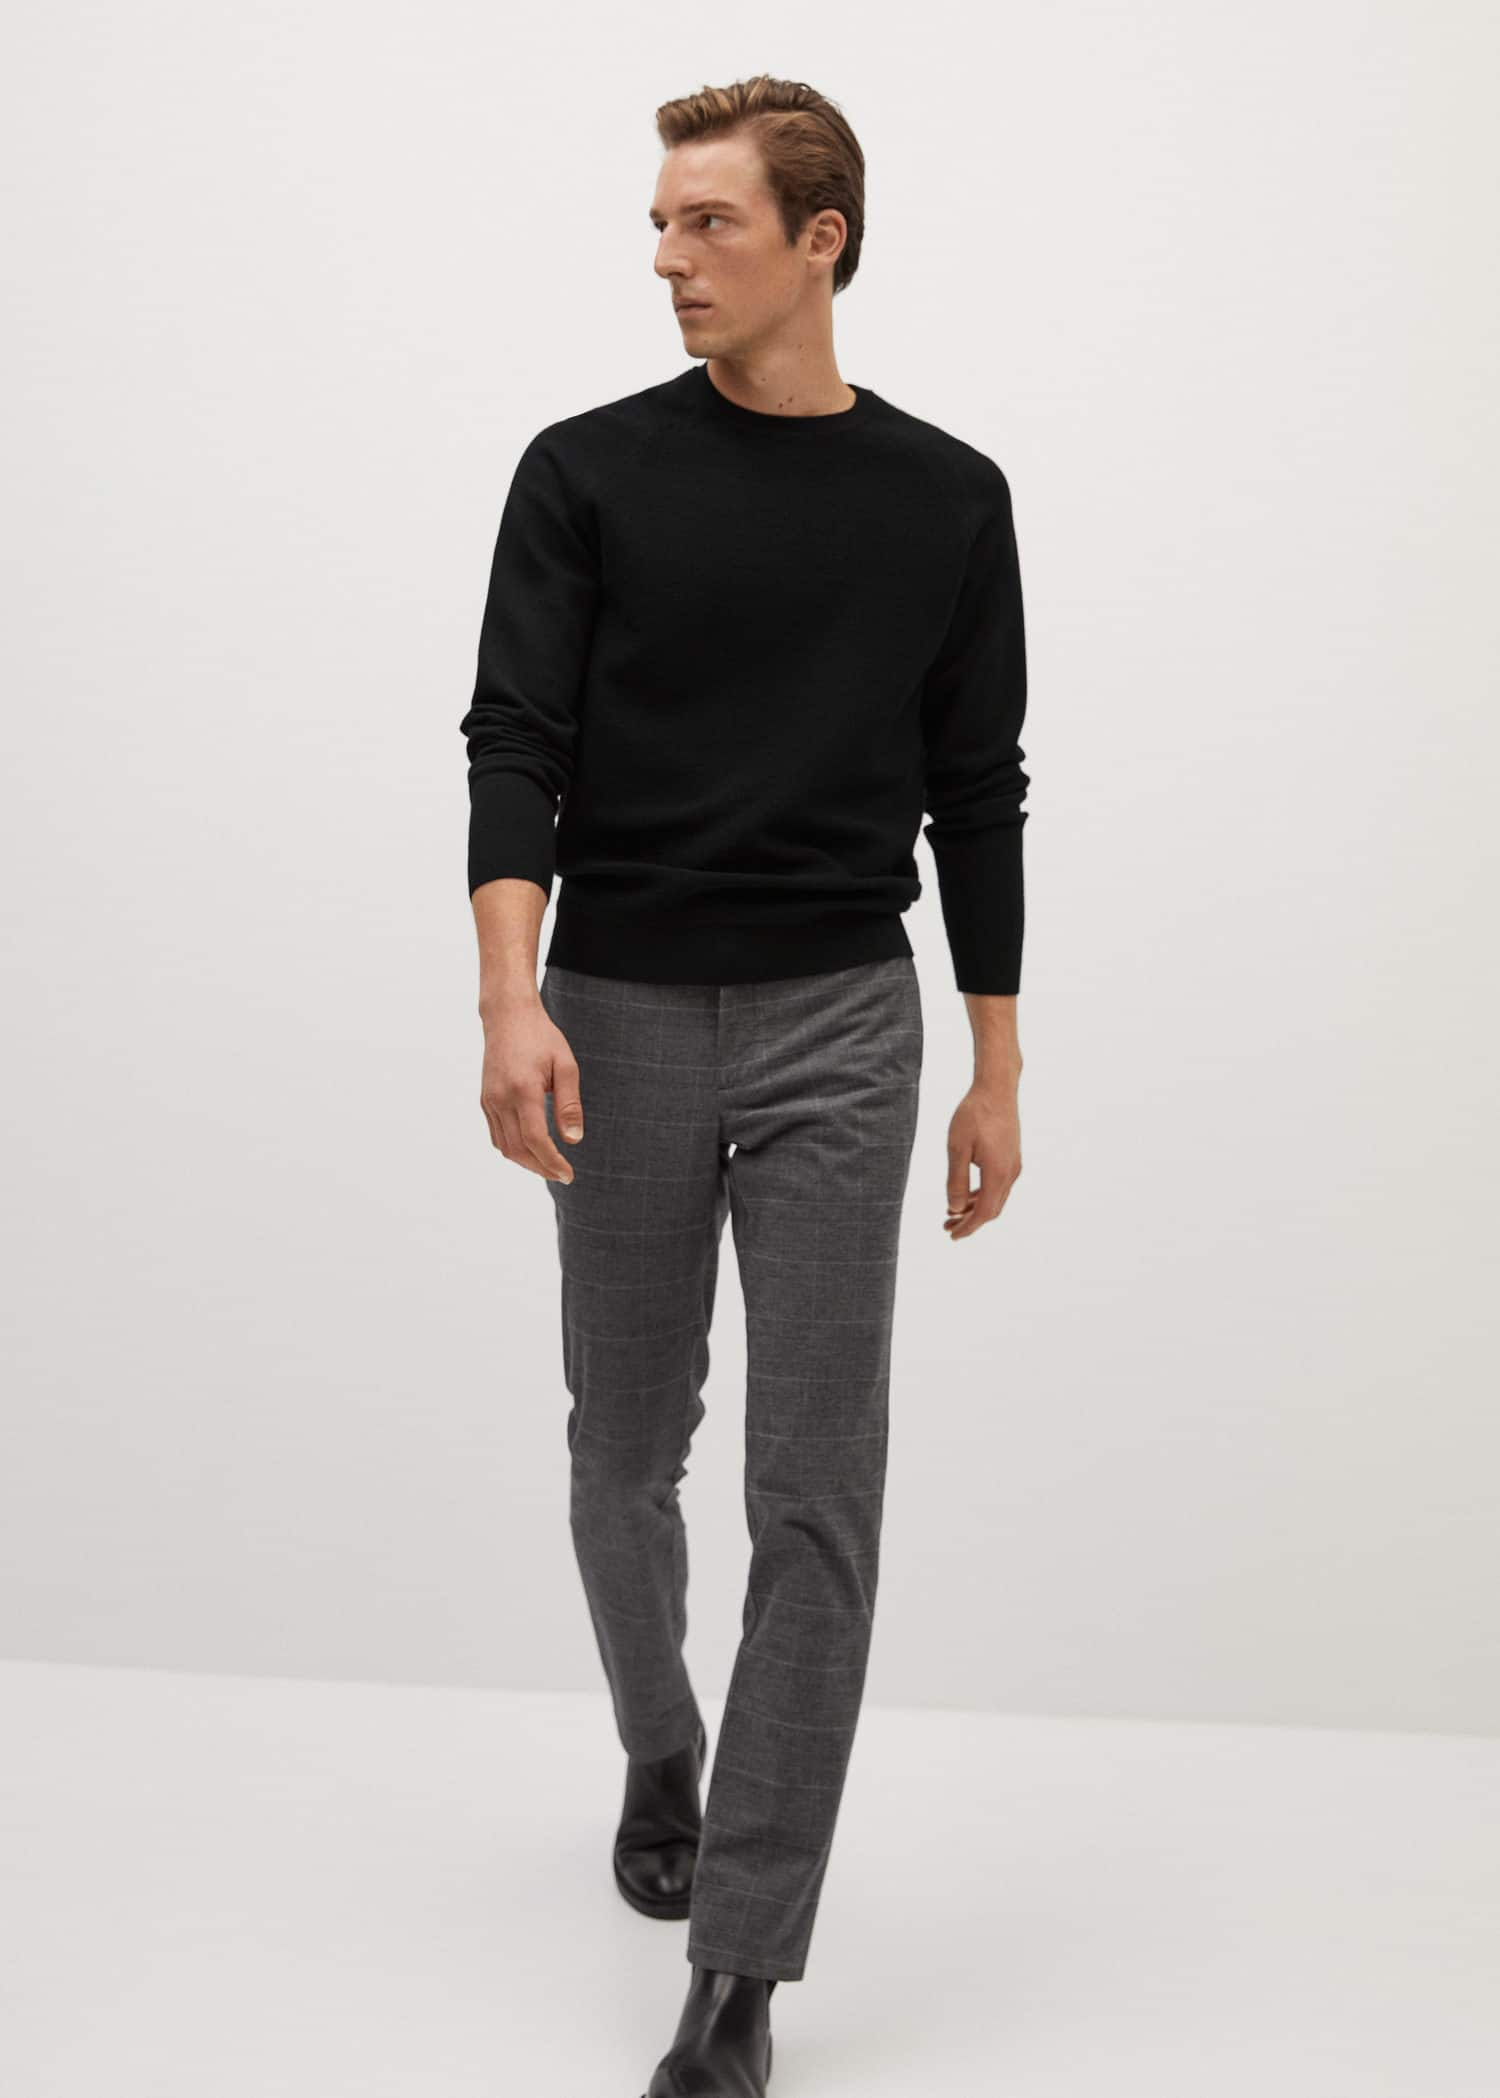 Striped structure sweater - General plane